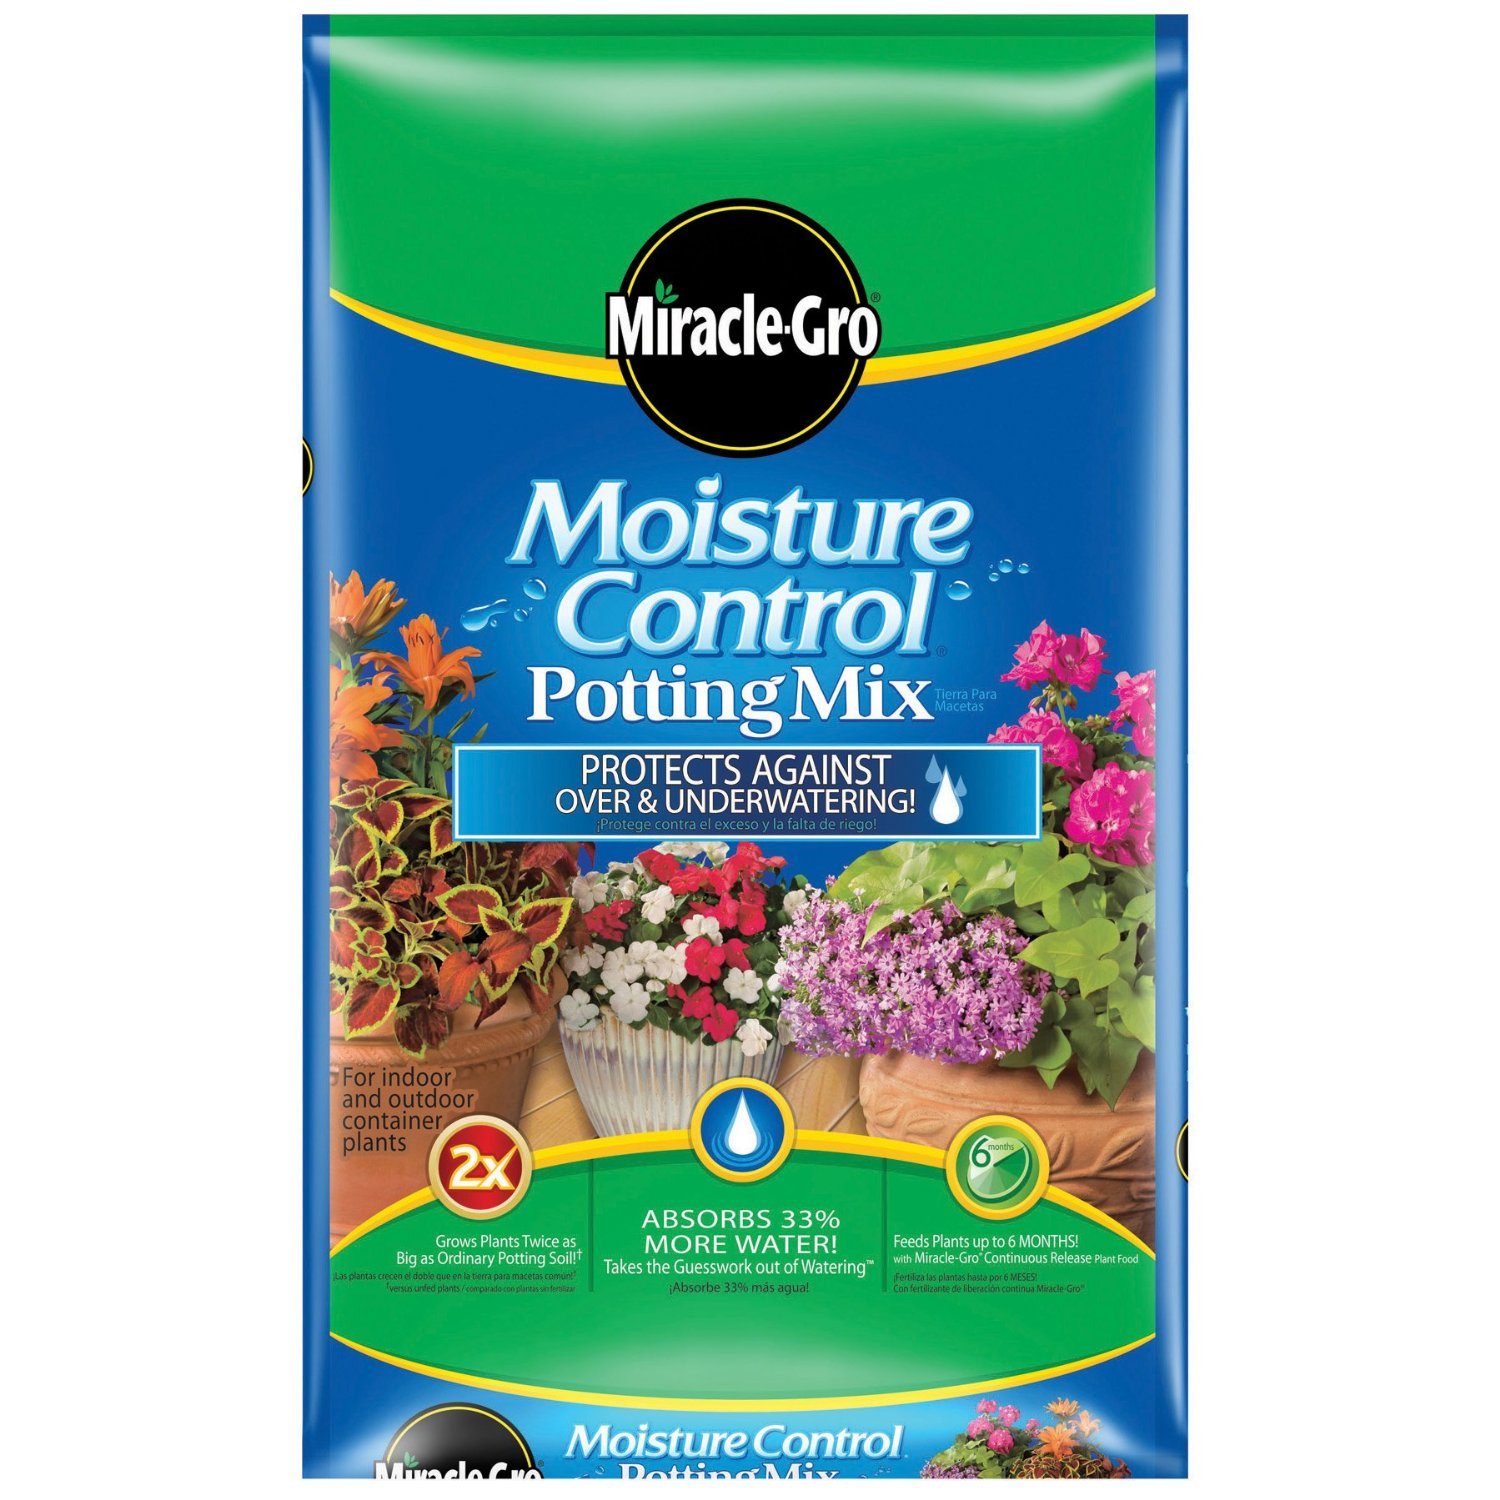 Miracle-Gro Moisture Control Potting Mix, 1-Cubic Foot